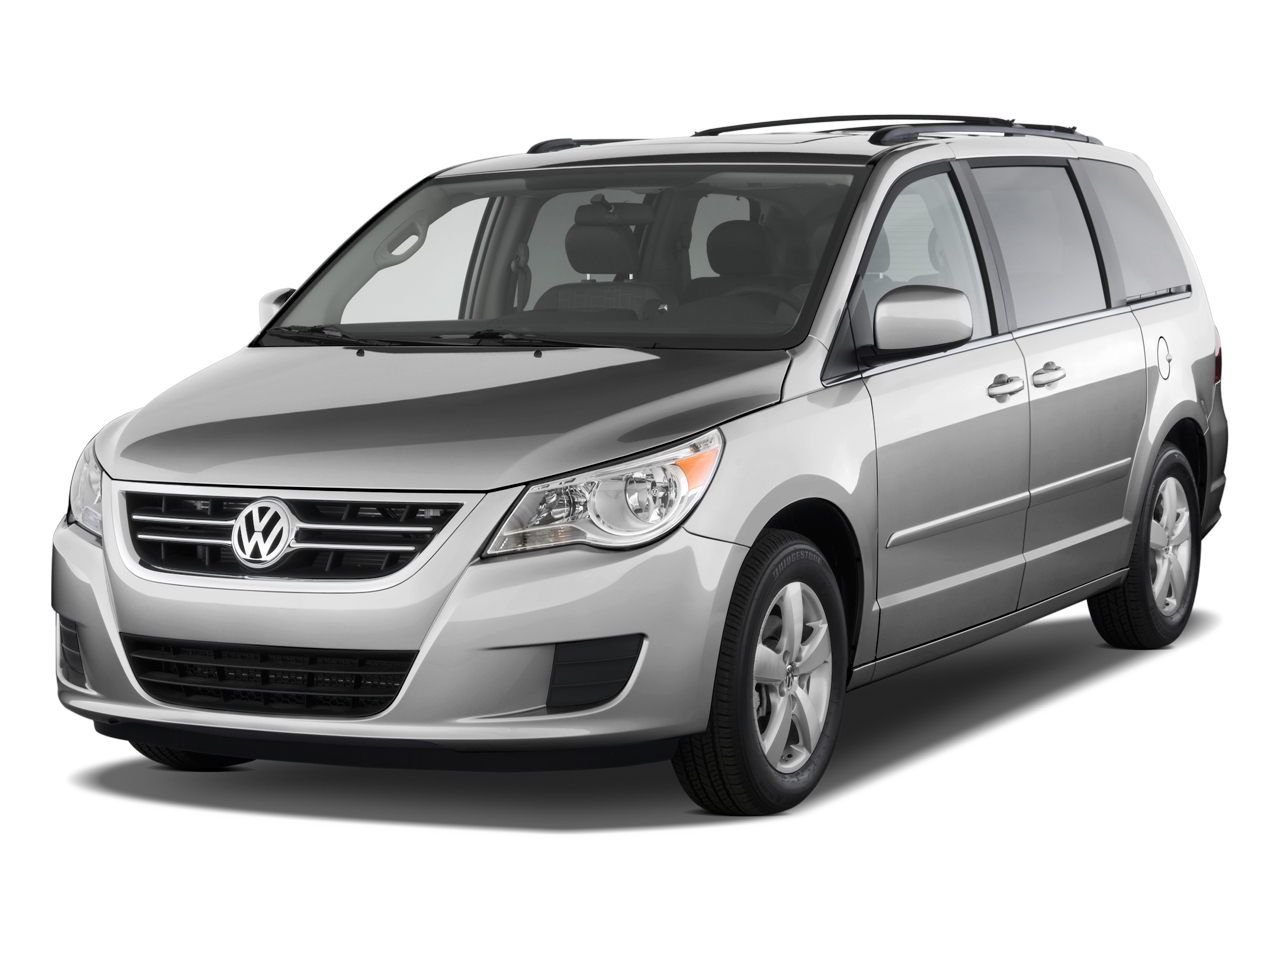 2010 volkswagen routan loading zone. Black Bedroom Furniture Sets. Home Design Ideas